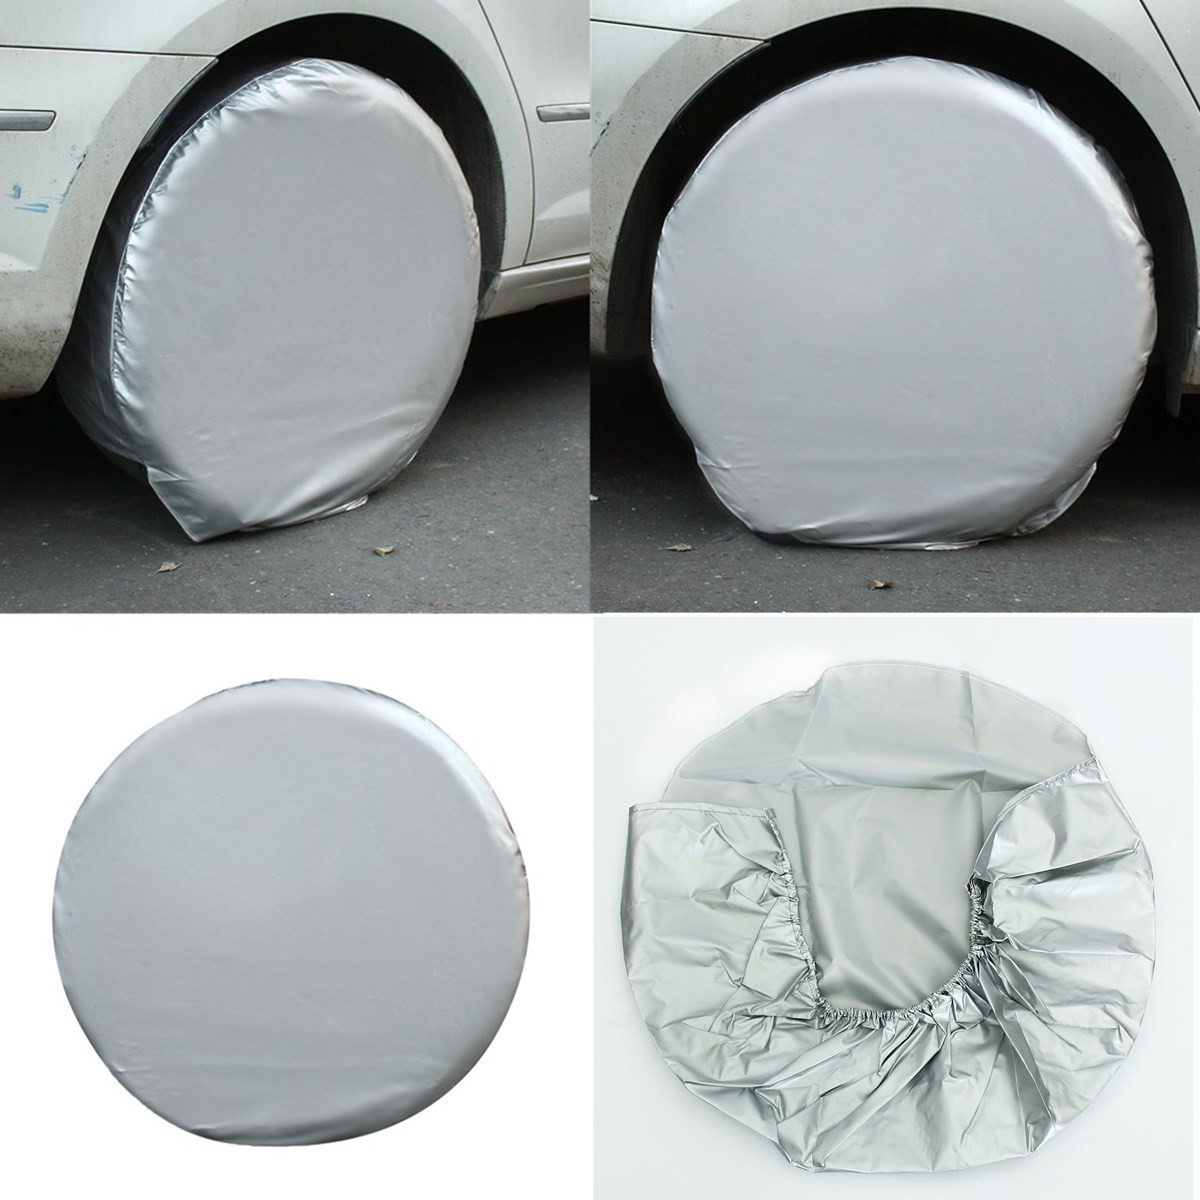 4PCs/Set 27-29 Inches Car Auto Spare Wheels Tire Tyre Cover Heavy Duty Car Waterproof Tire Cover For RV Truck Trailer Motorhome